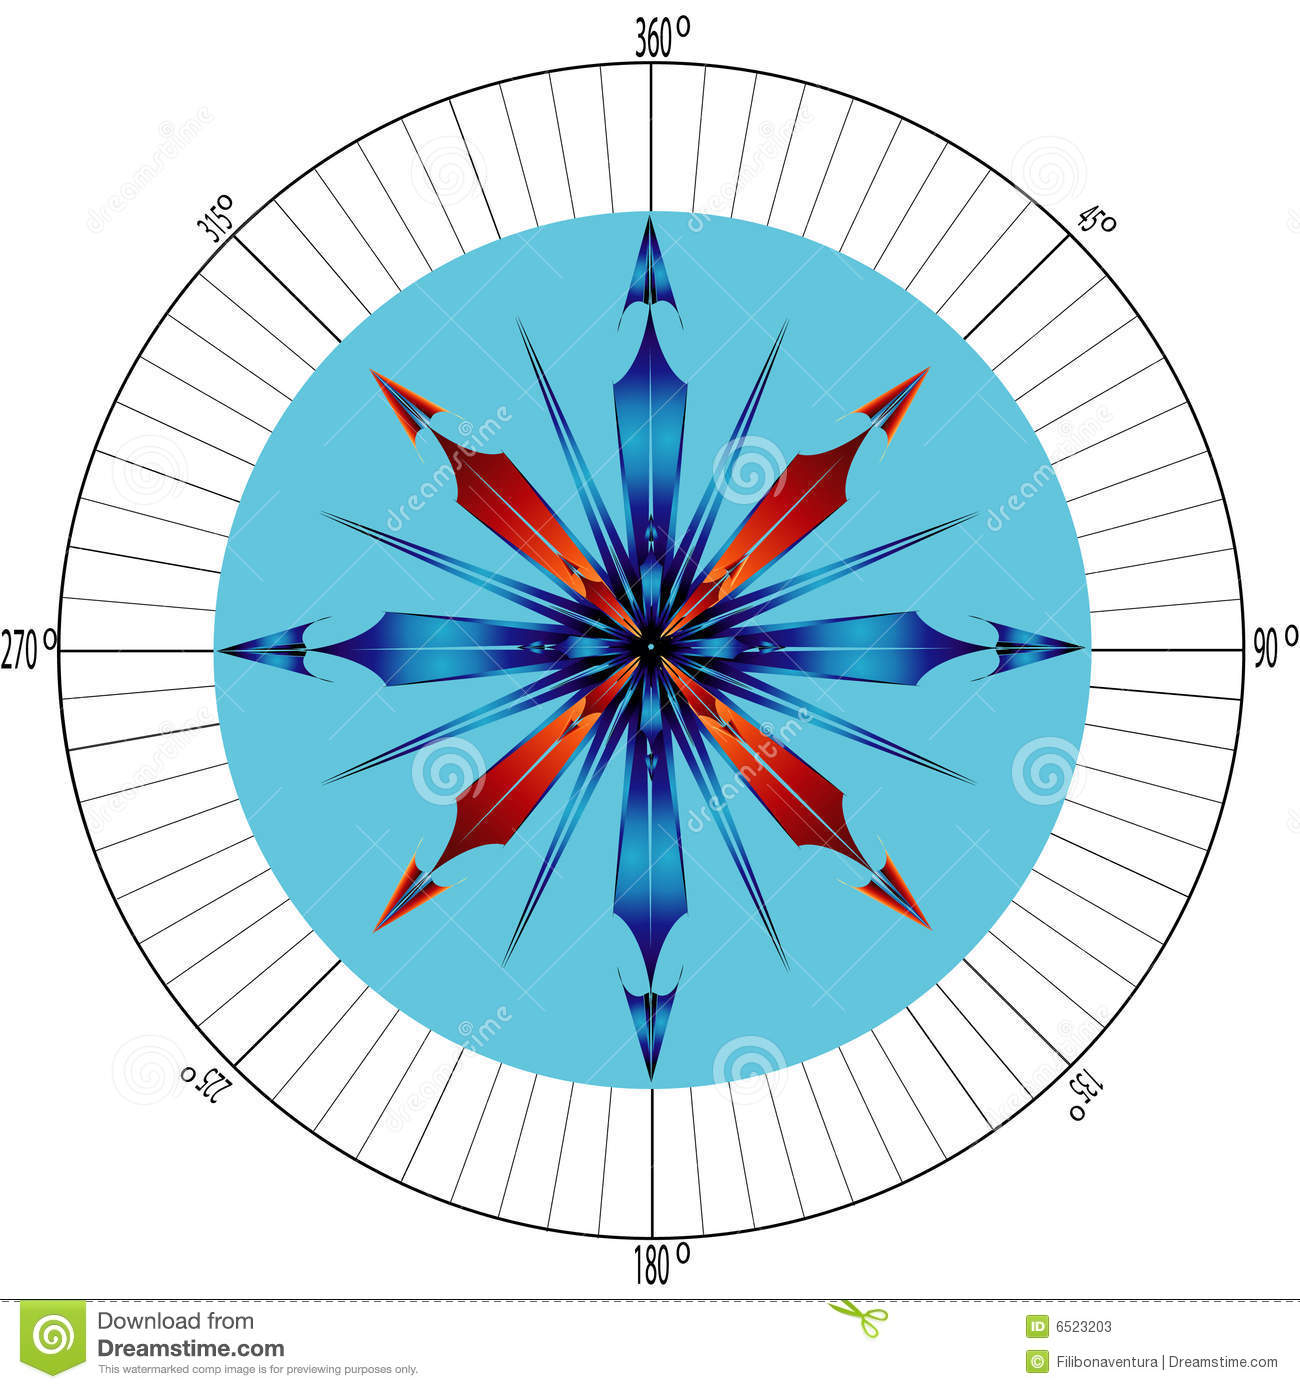 Compass rose with degrees